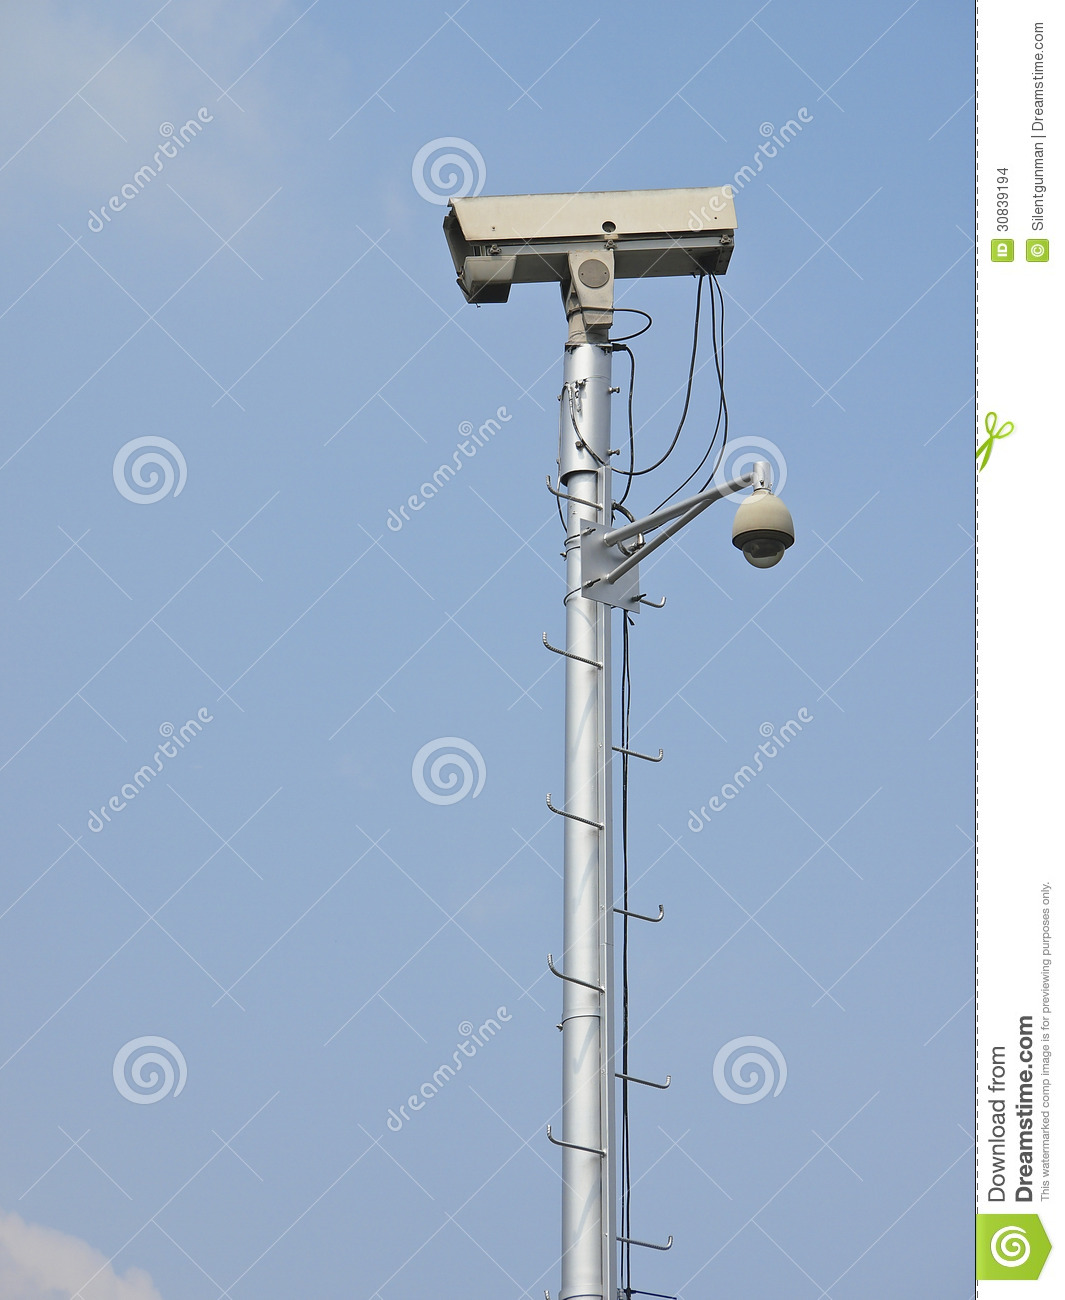 High Cctv Pole Stock Photo Image Of Protection Safety